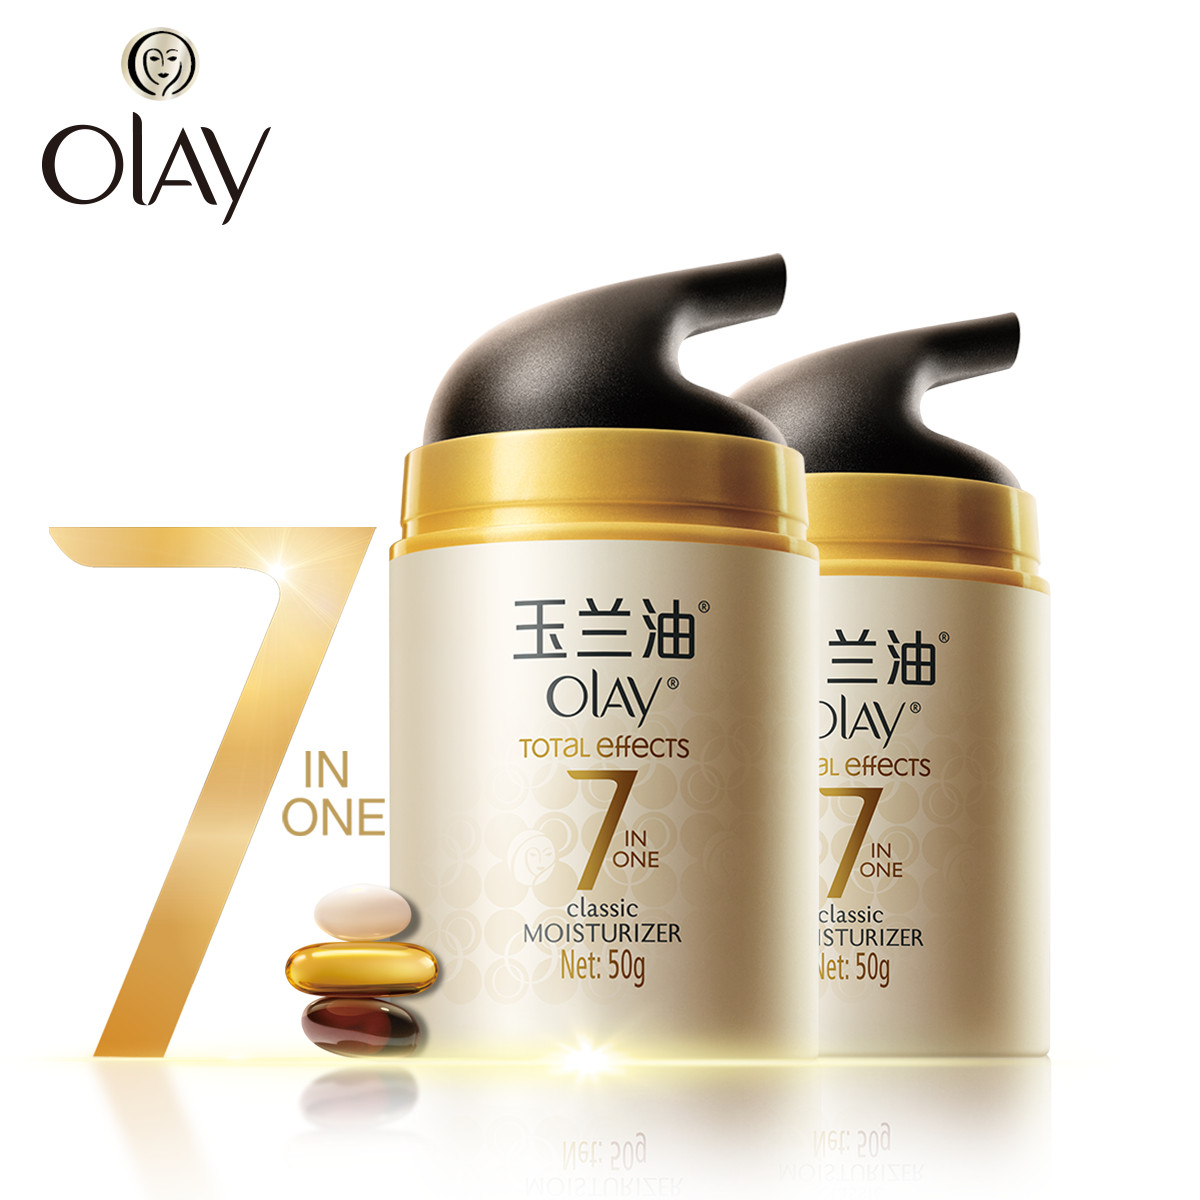 Olay Total Effects Moisturizing Cream 50g Light Pattern Firming Day Normal Spf 15 8g Classic Moisturizer